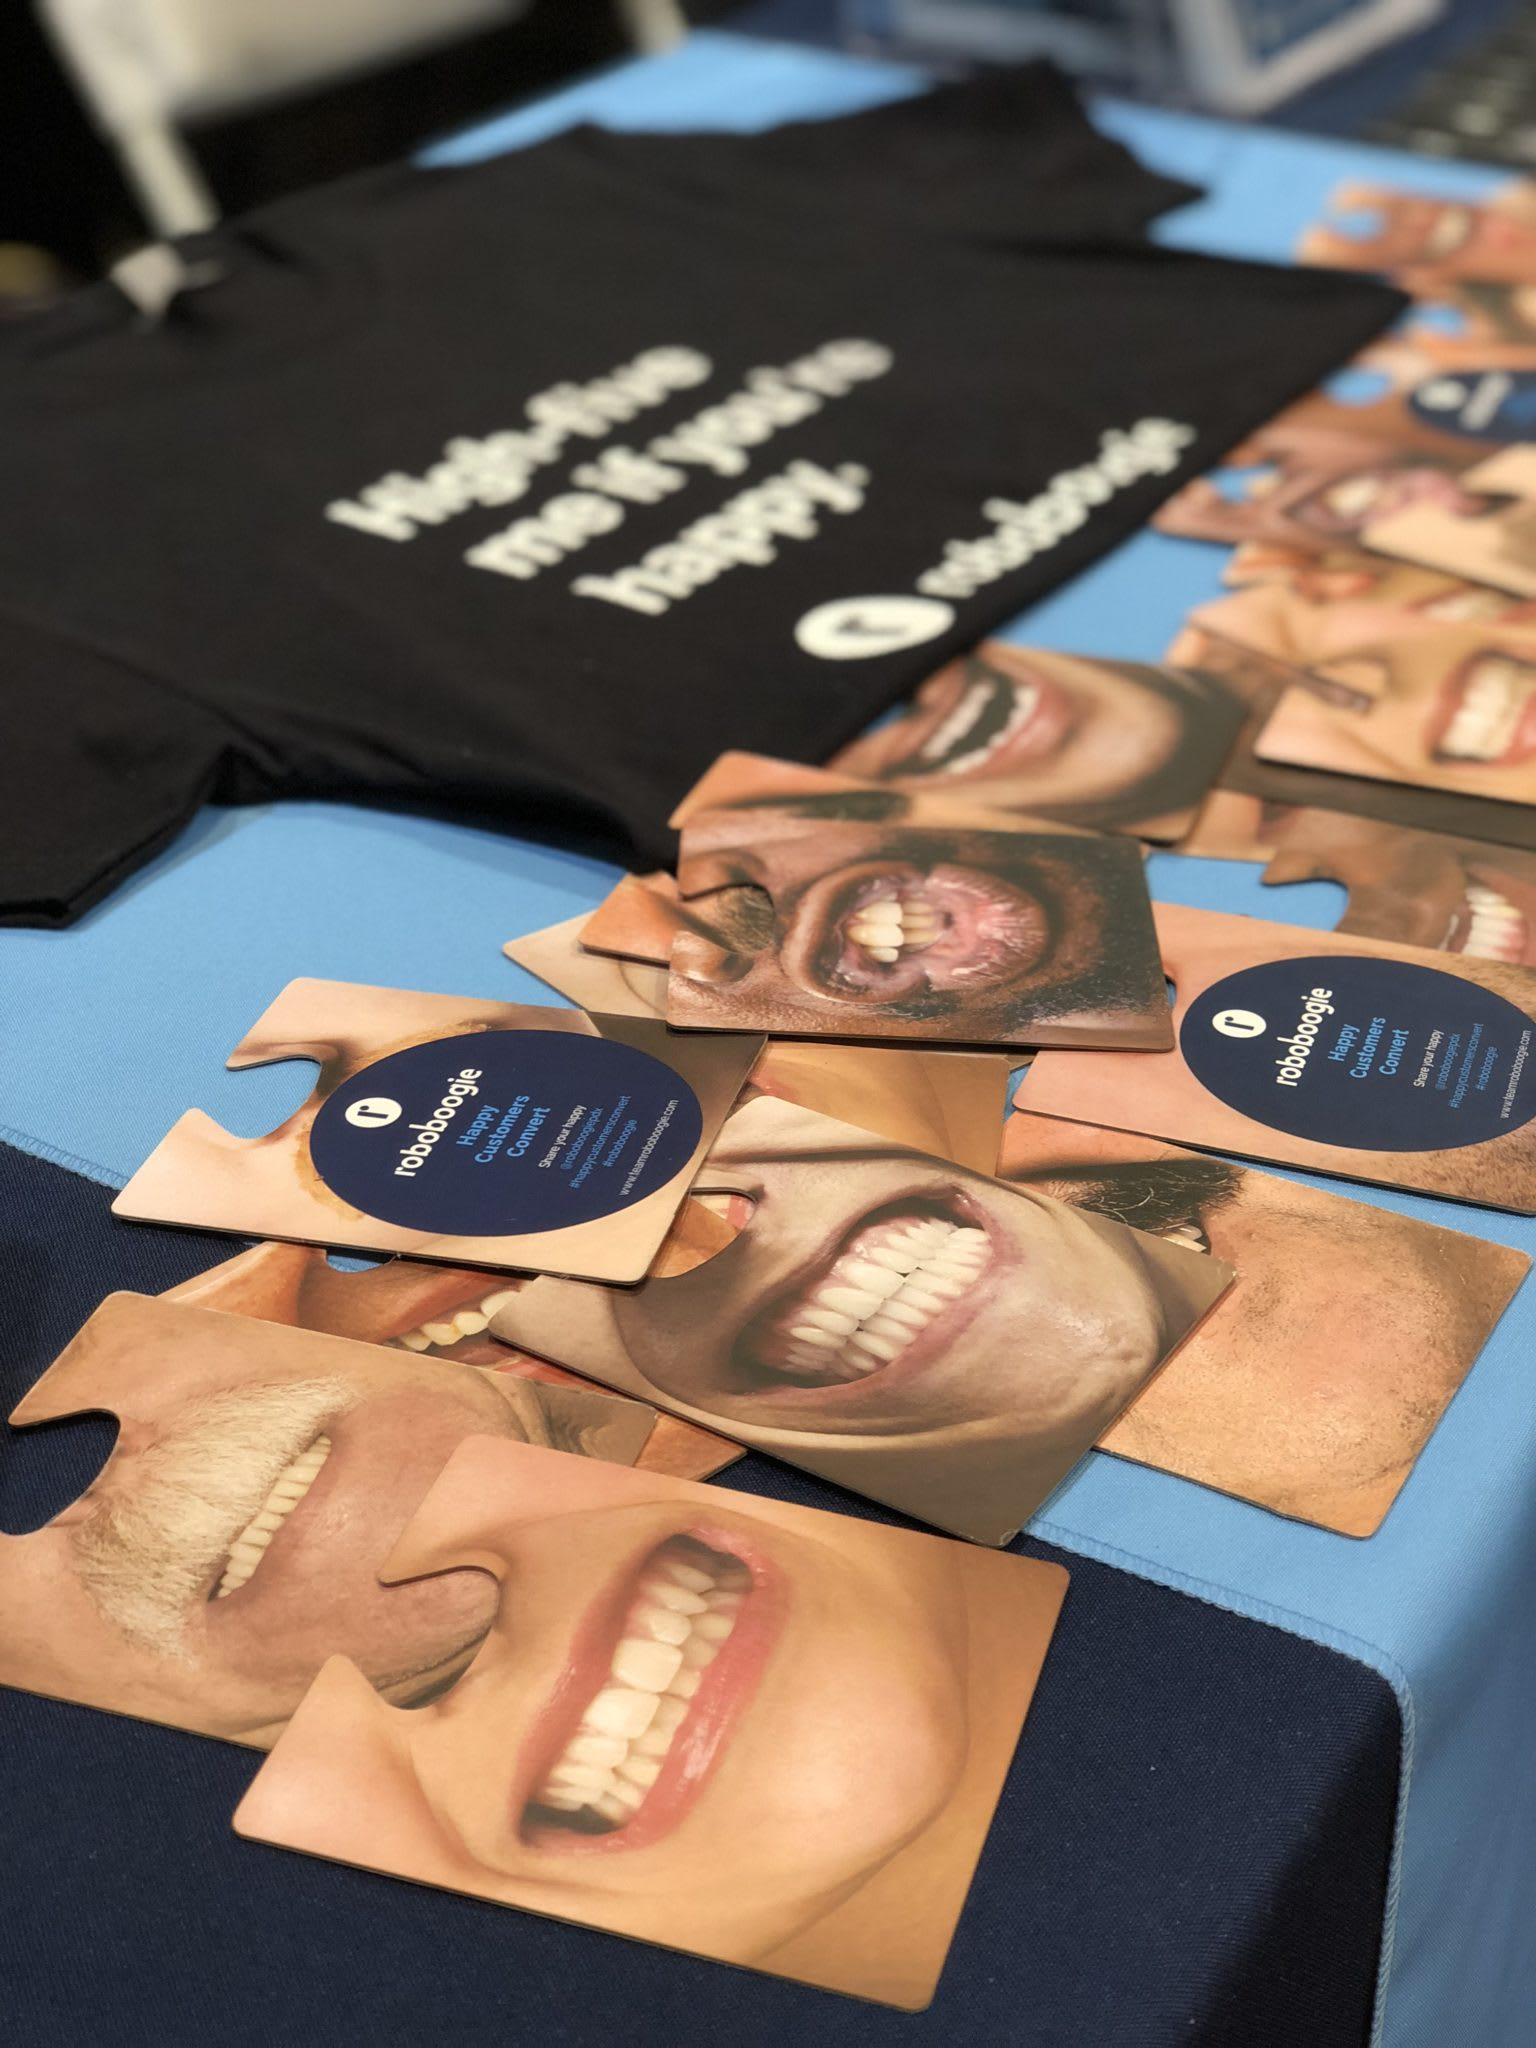 roboboogie swag at DGU including face coasters and shirts